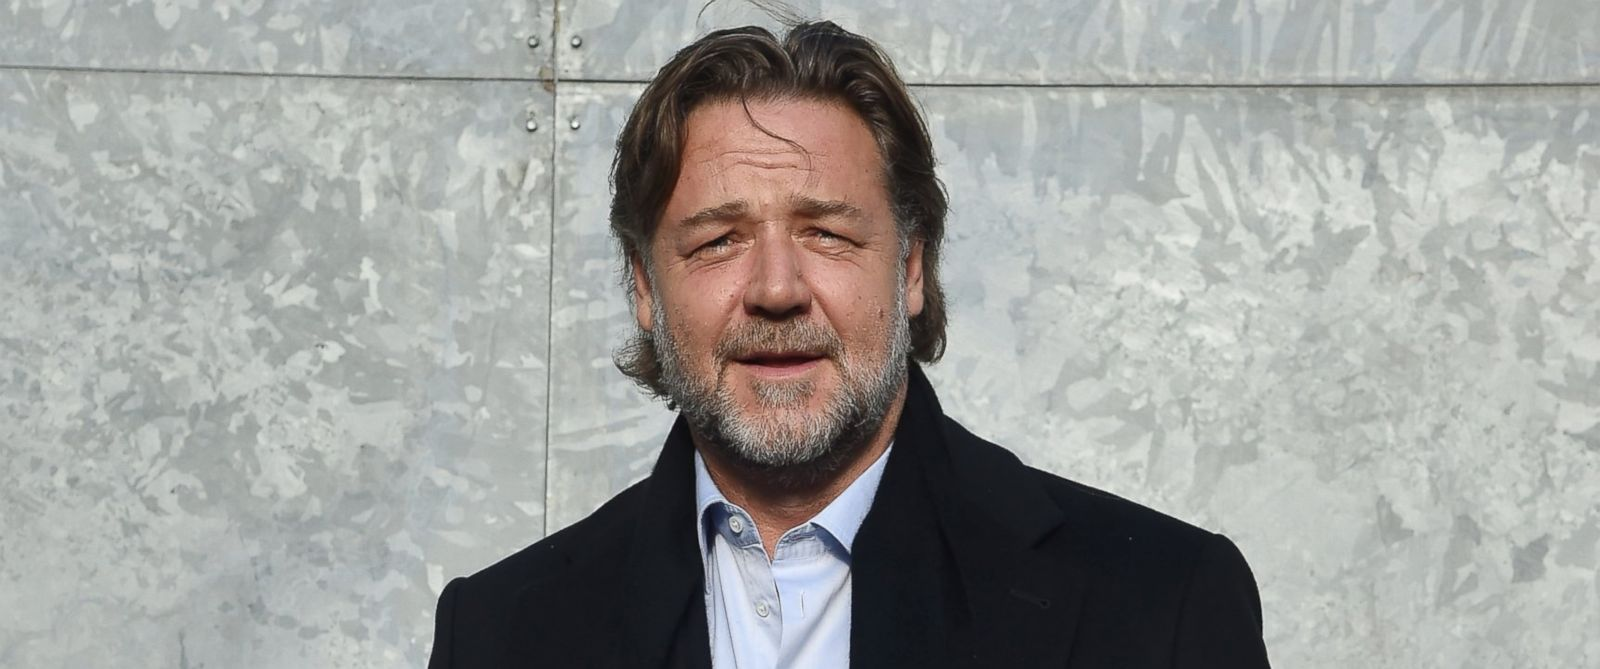 PHOTO: Russell Crowe arrives at the Giorgio Armani show during Milan Mens Fashion Week Fall/Winter 2016/17, Jan. 19, 2016 in Milan.